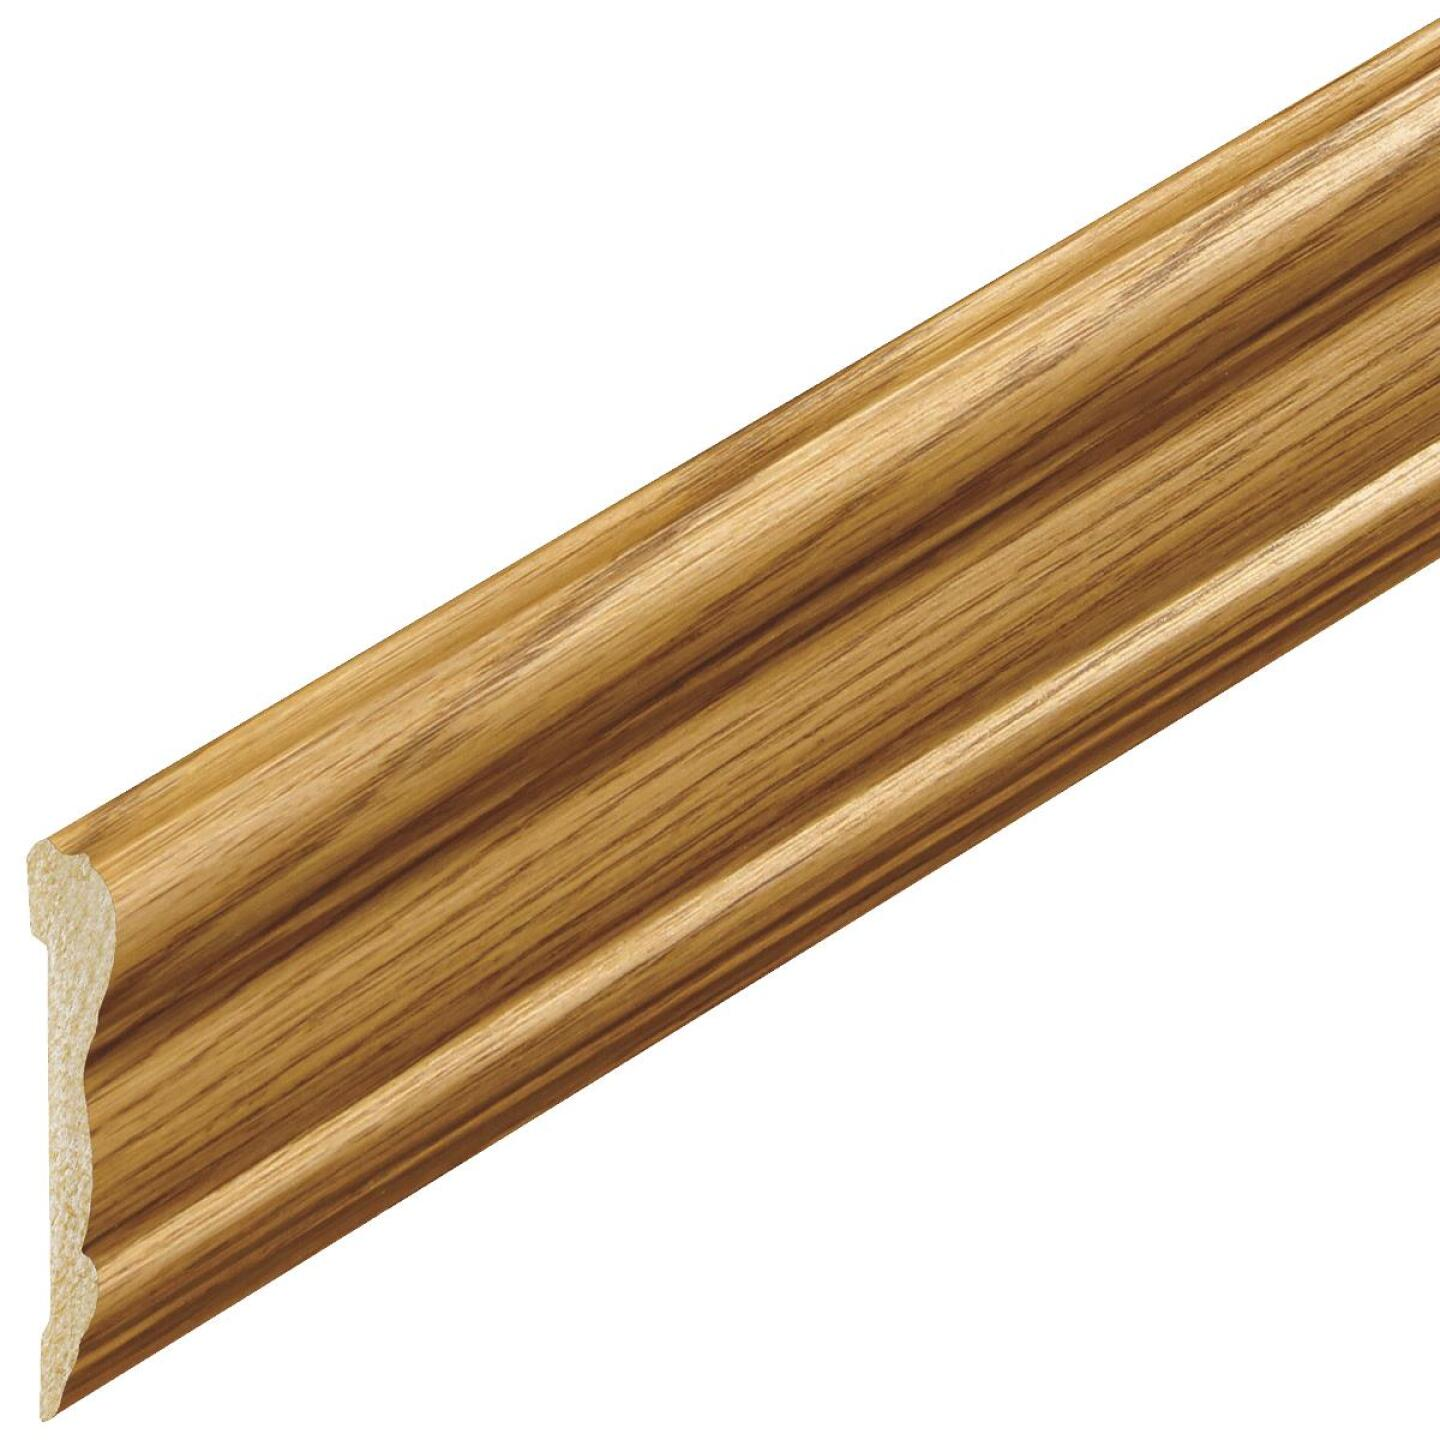 Inteplast Building Products 5/8 In. x 2-5/8 In. x 8 Ft. Ultra Oak Polystyrene Chair Rail Molding Image 2